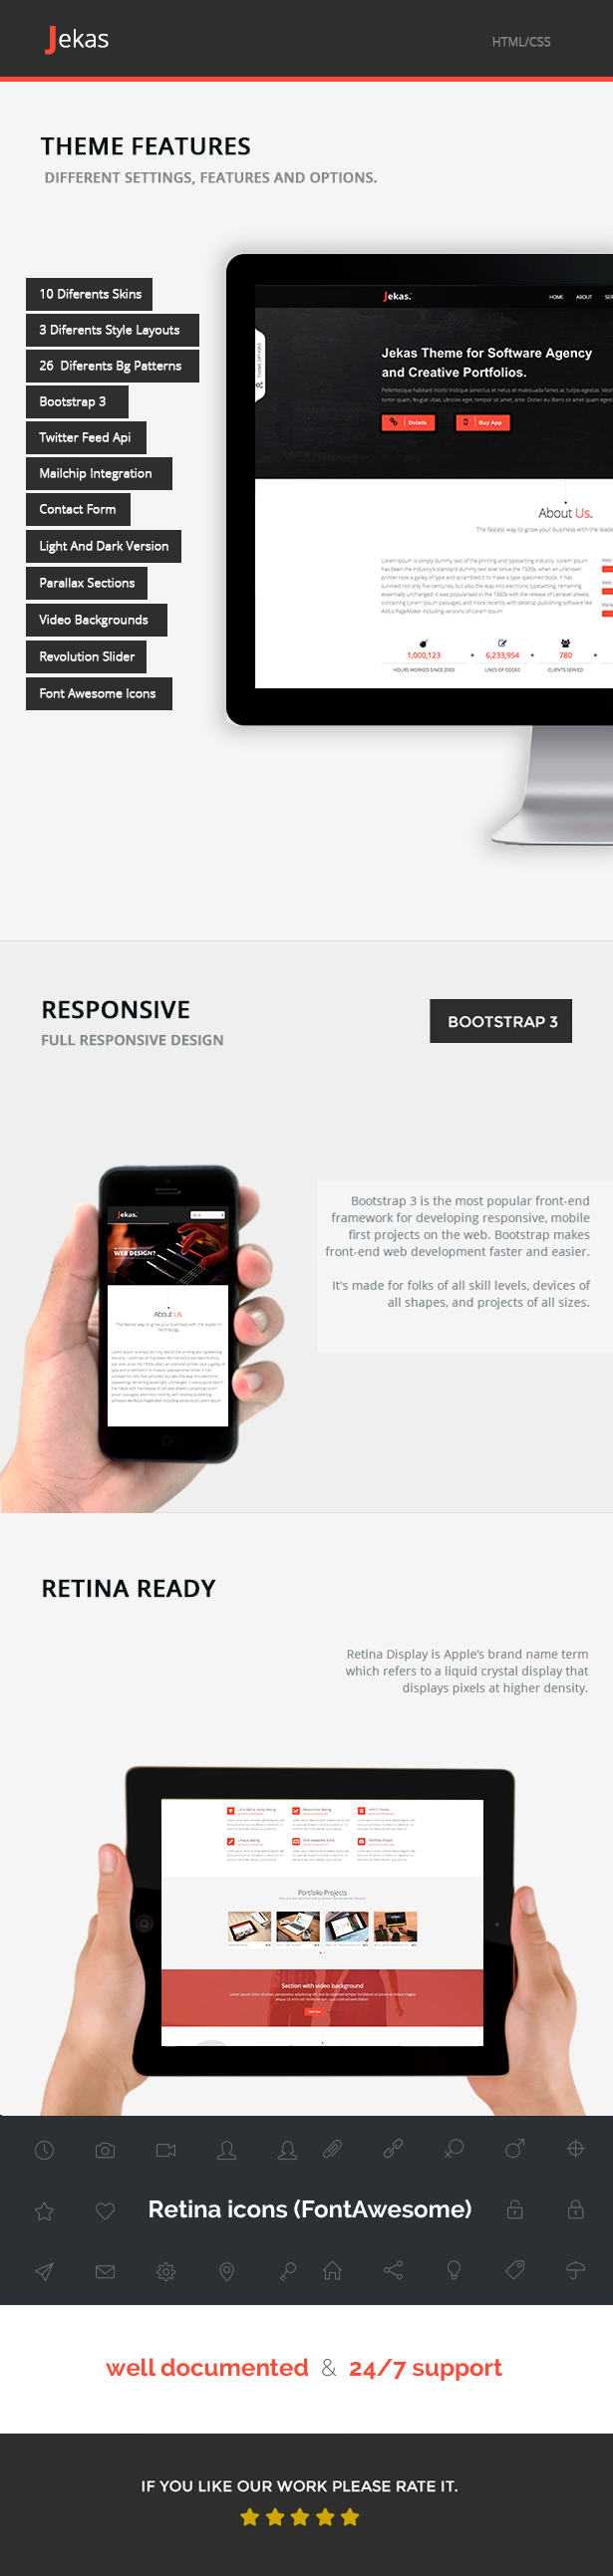 Software, Technology & Business Bootstrap Html Template - Jekas - 14